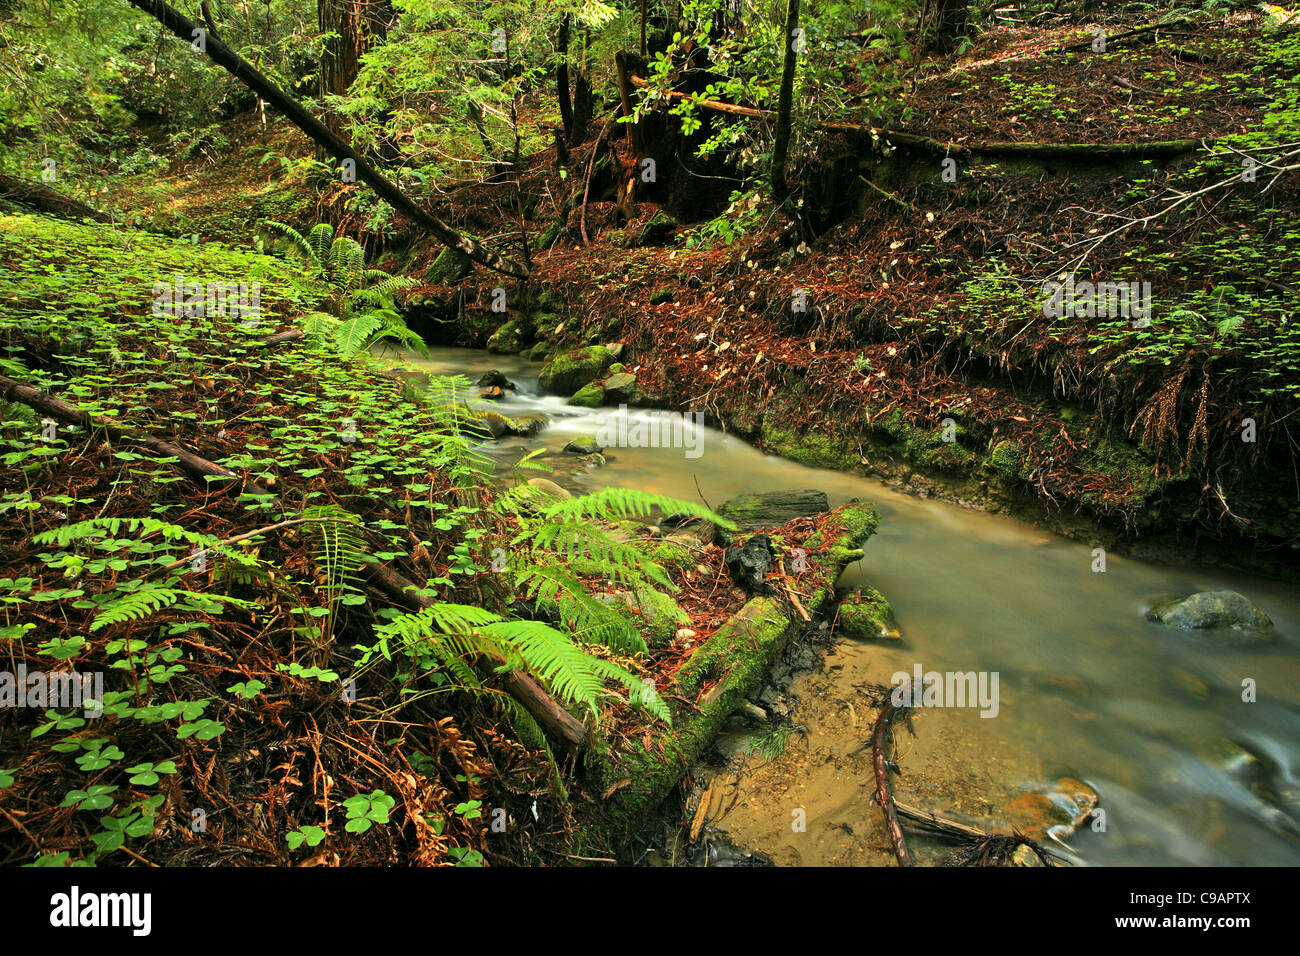 Lush rain forest stream with ferns and clovers - Stock Image